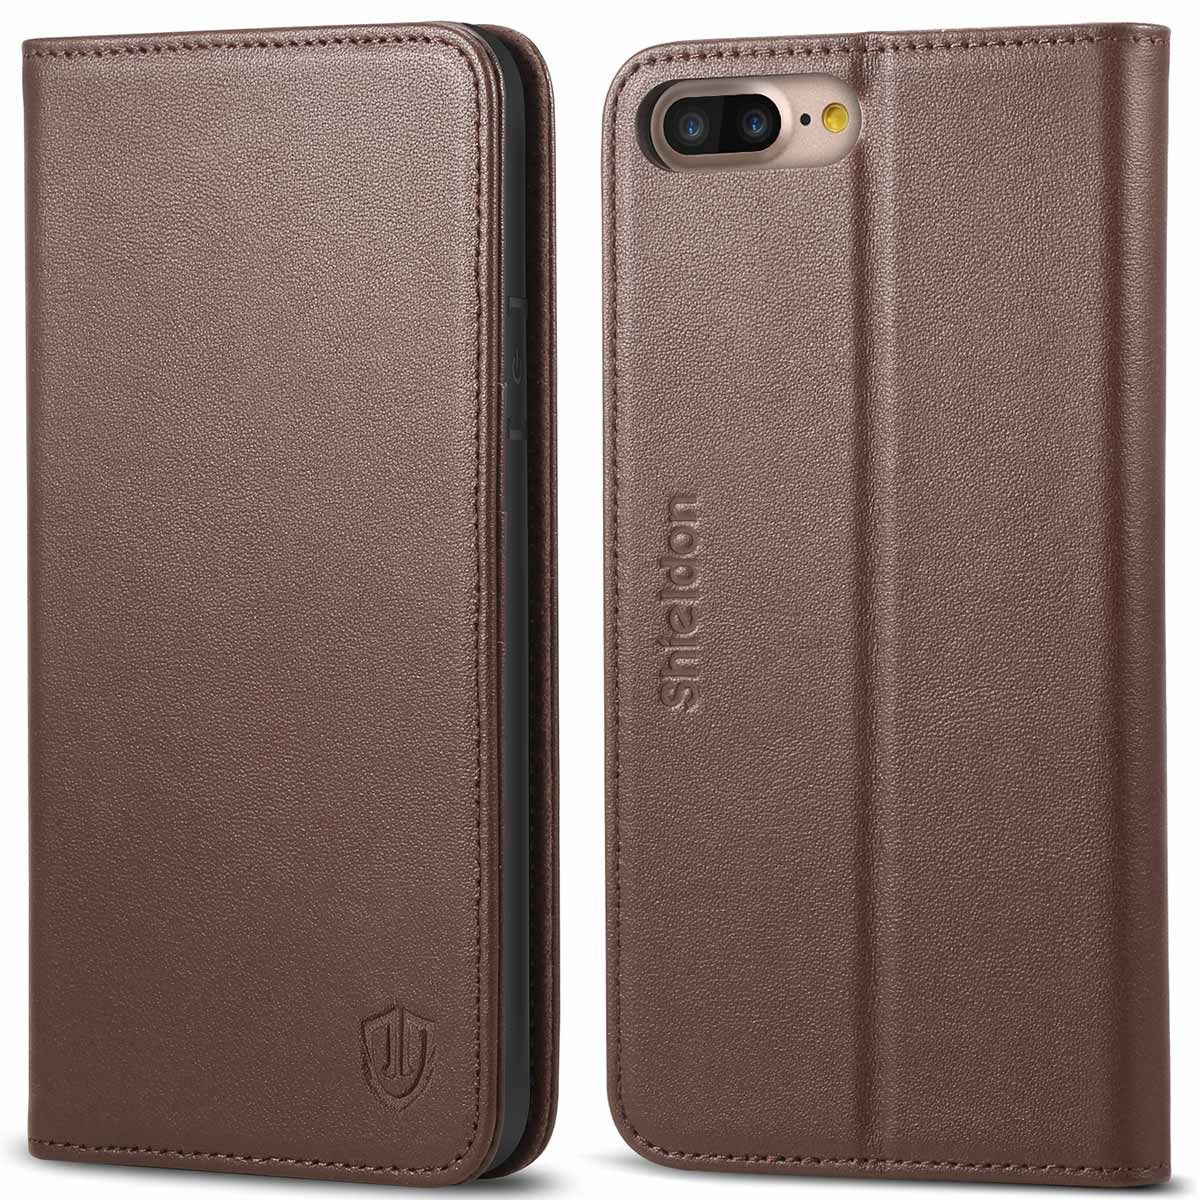 premium selection 11fe9 261b8 SHIELDON iPhone 8 Plus Wallet Case, iPhone 7 Leather Case - Genuine Leather  Cover, Magnetic Closure, Kickstand